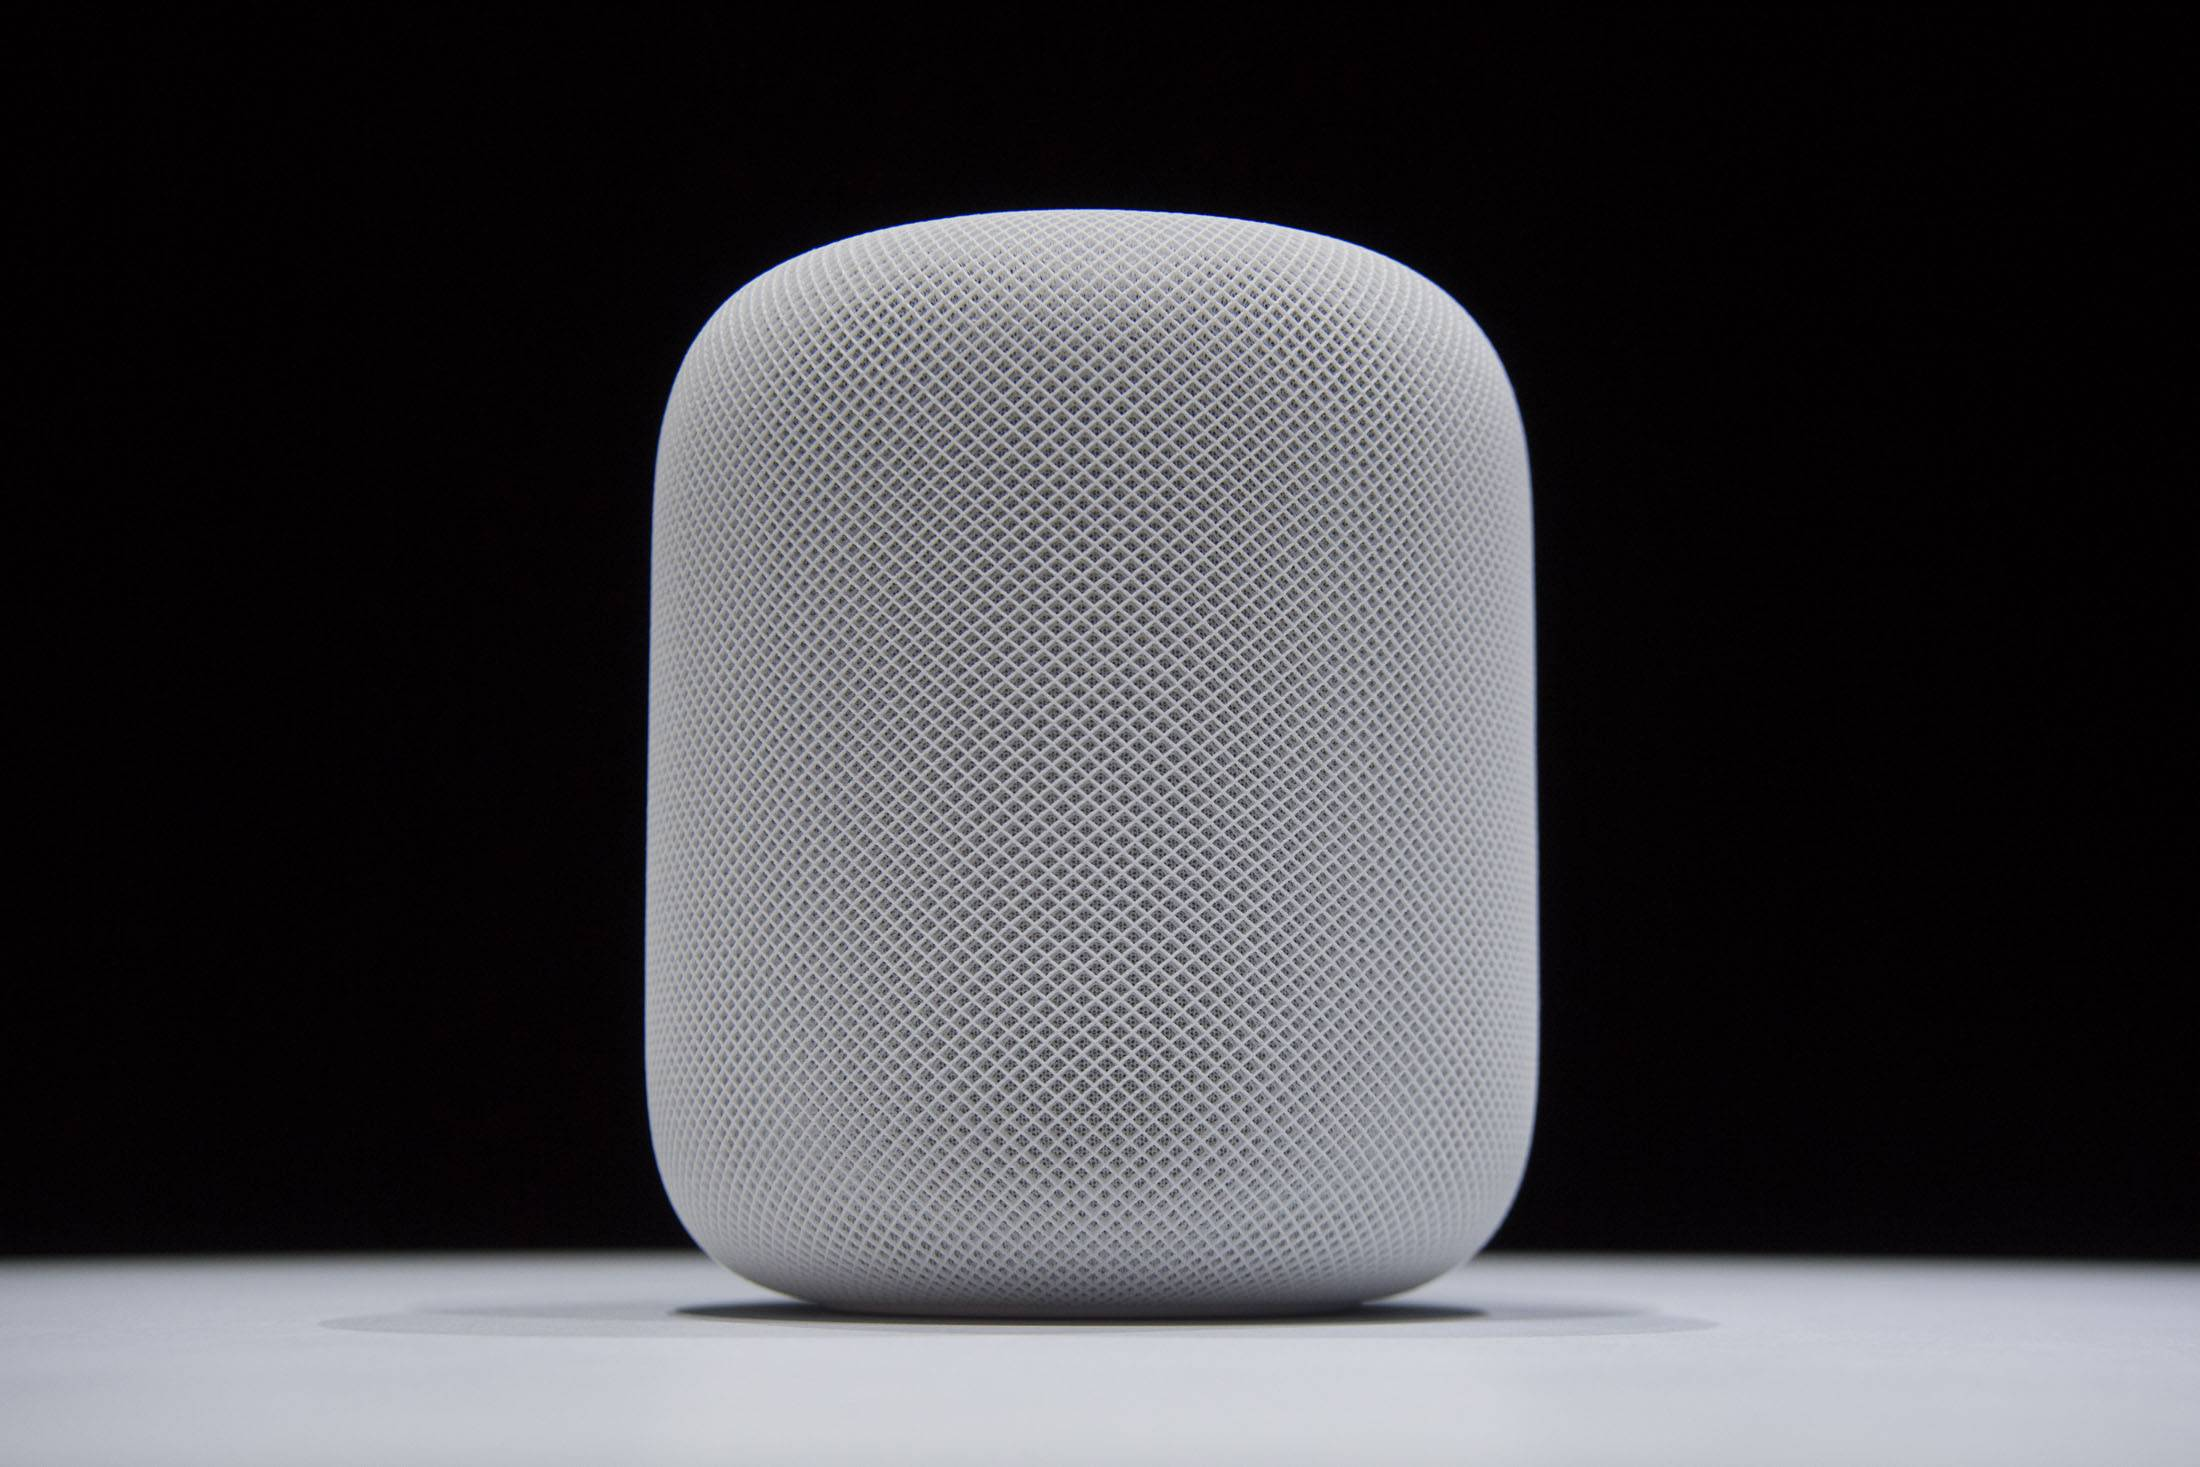 The HomePod speaker on display at the Apple Worldwide Developers Conference in San Jose, California.